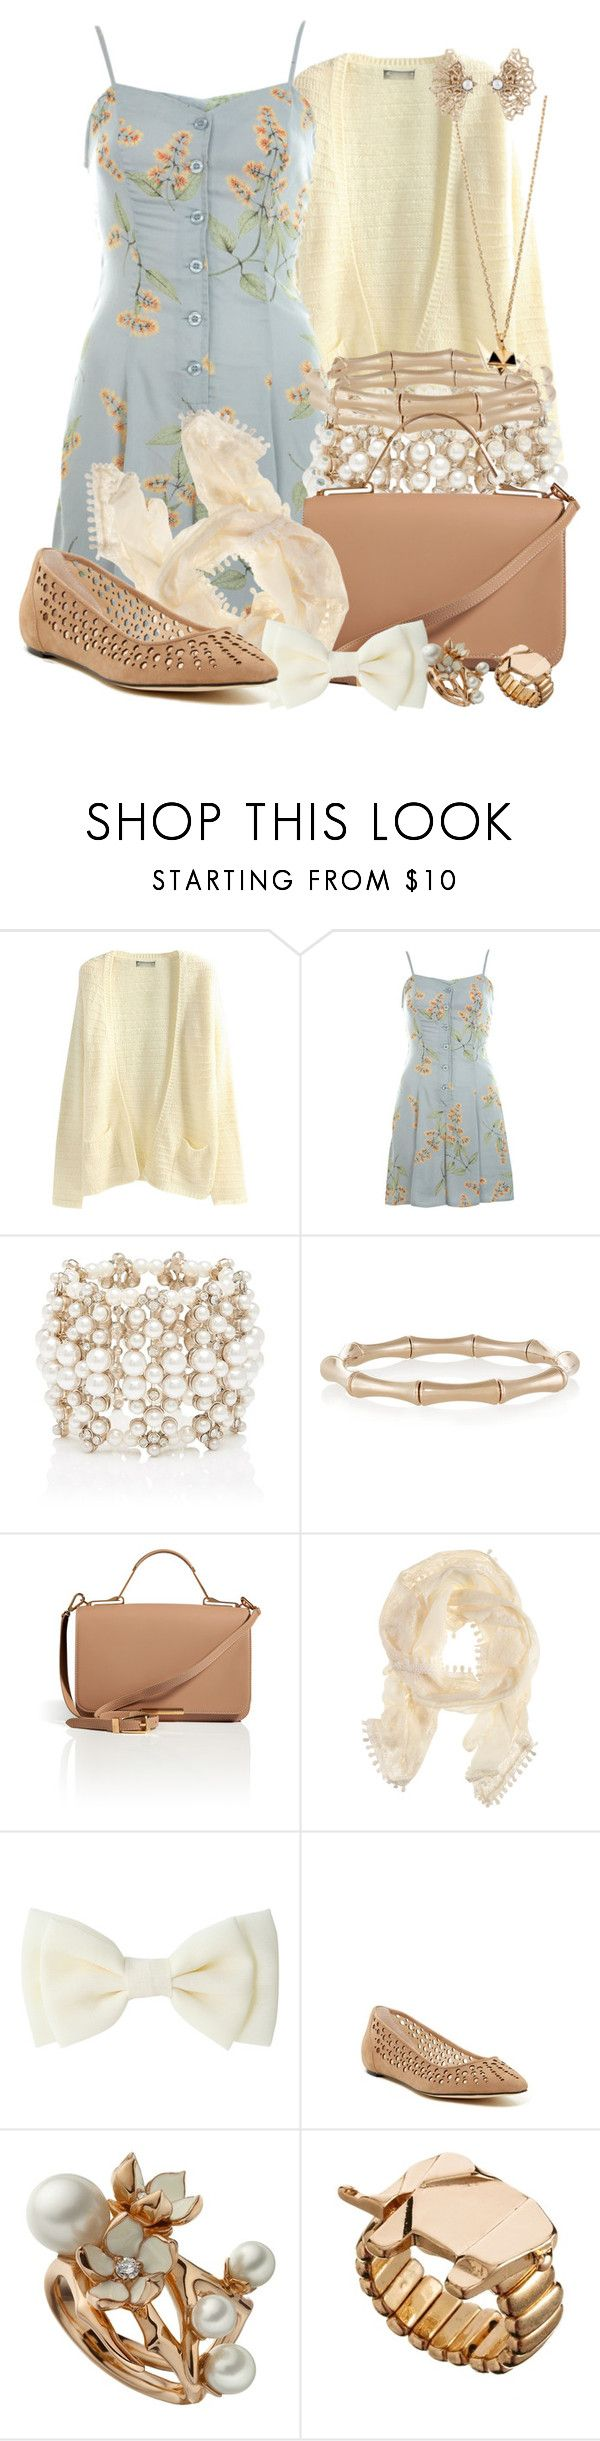 """Shadow at the Water's Edge"" by detectiveworkisalwaysinstyle ❤ liked on Polyvore featuring Miss Selfridge, Forever New, Gucci, Emilio Pucci, H&M, Calvin Klein, Shaun Leane, Jamie Jewellery, Aurélie Bidermann and Oscar de la Renta"